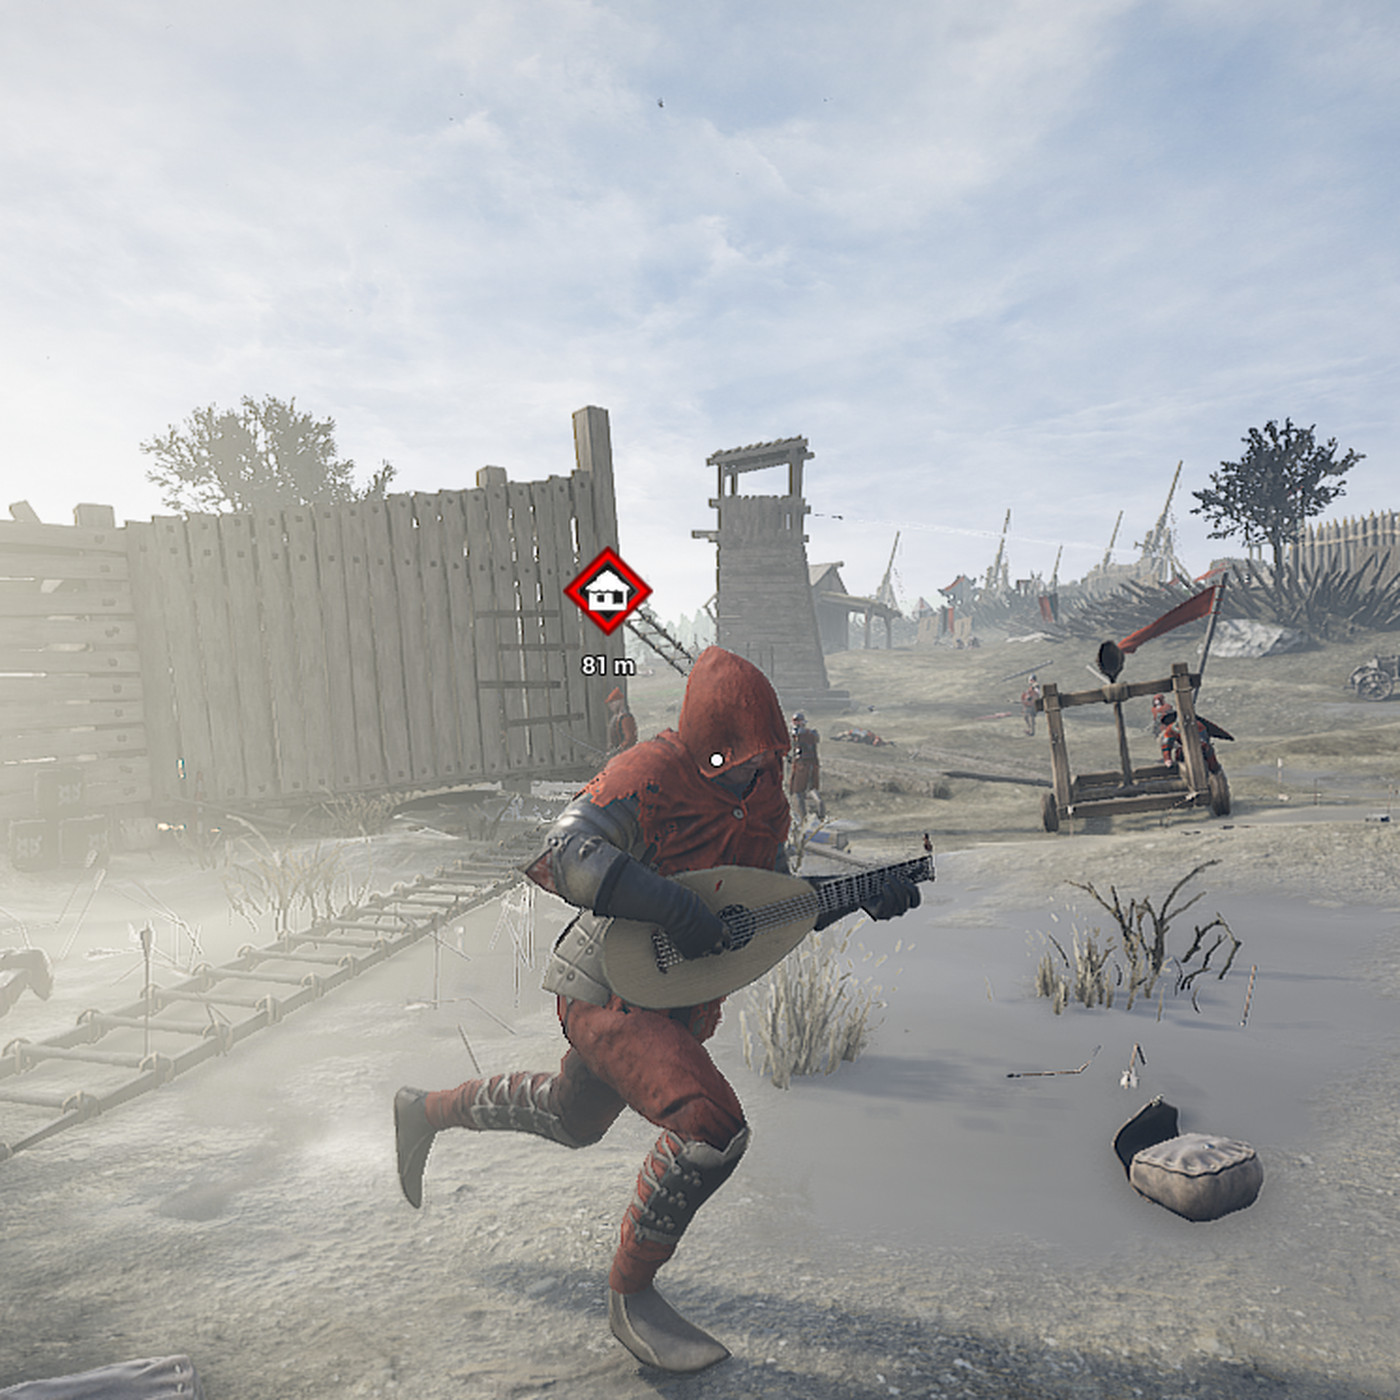 Mordhau add-on allows you to play almost any song on the in-game